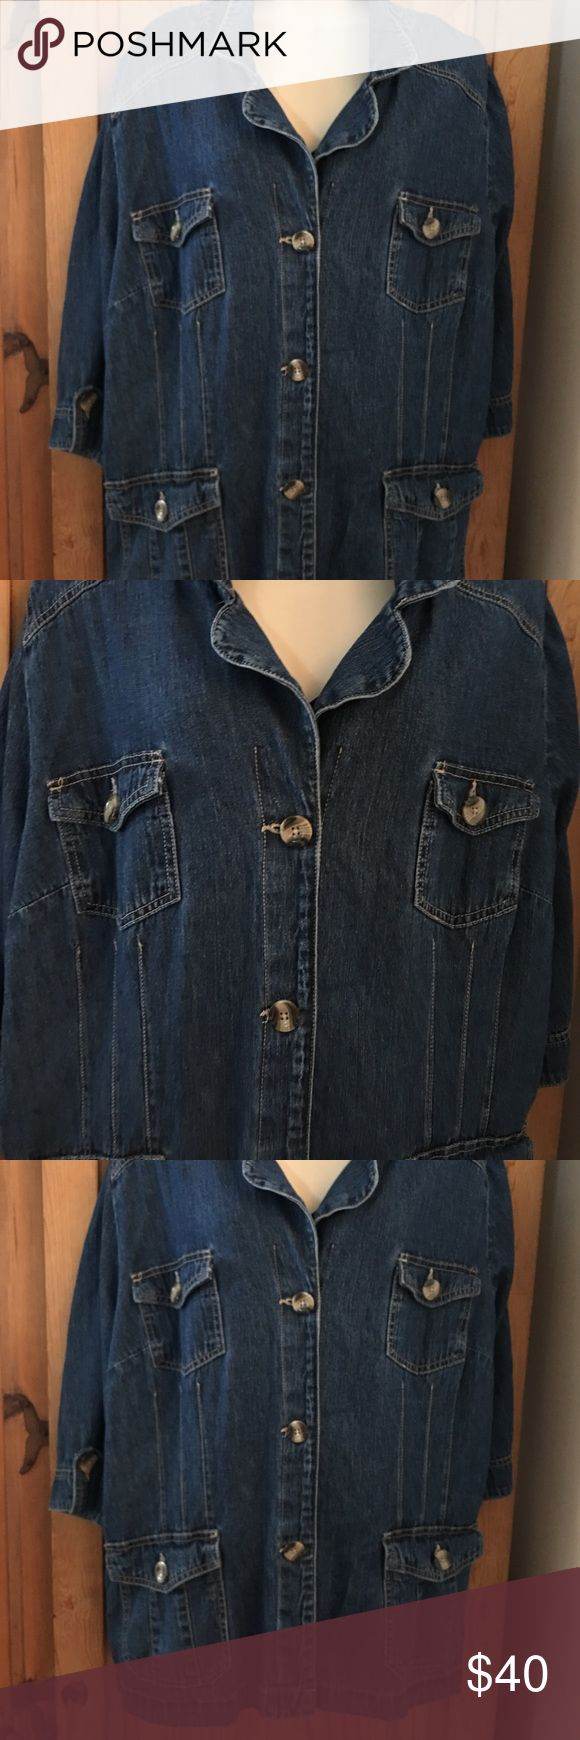 """Liz & Me"" Jean Jacket Great for fall🍂🍁Lightweight with cropped sleeves. Shoulder to hem is approximately 29"". Across chest is approximately 25"". Cropped sleeves are approximately 17"". Liz & Me Jackets & Coats"